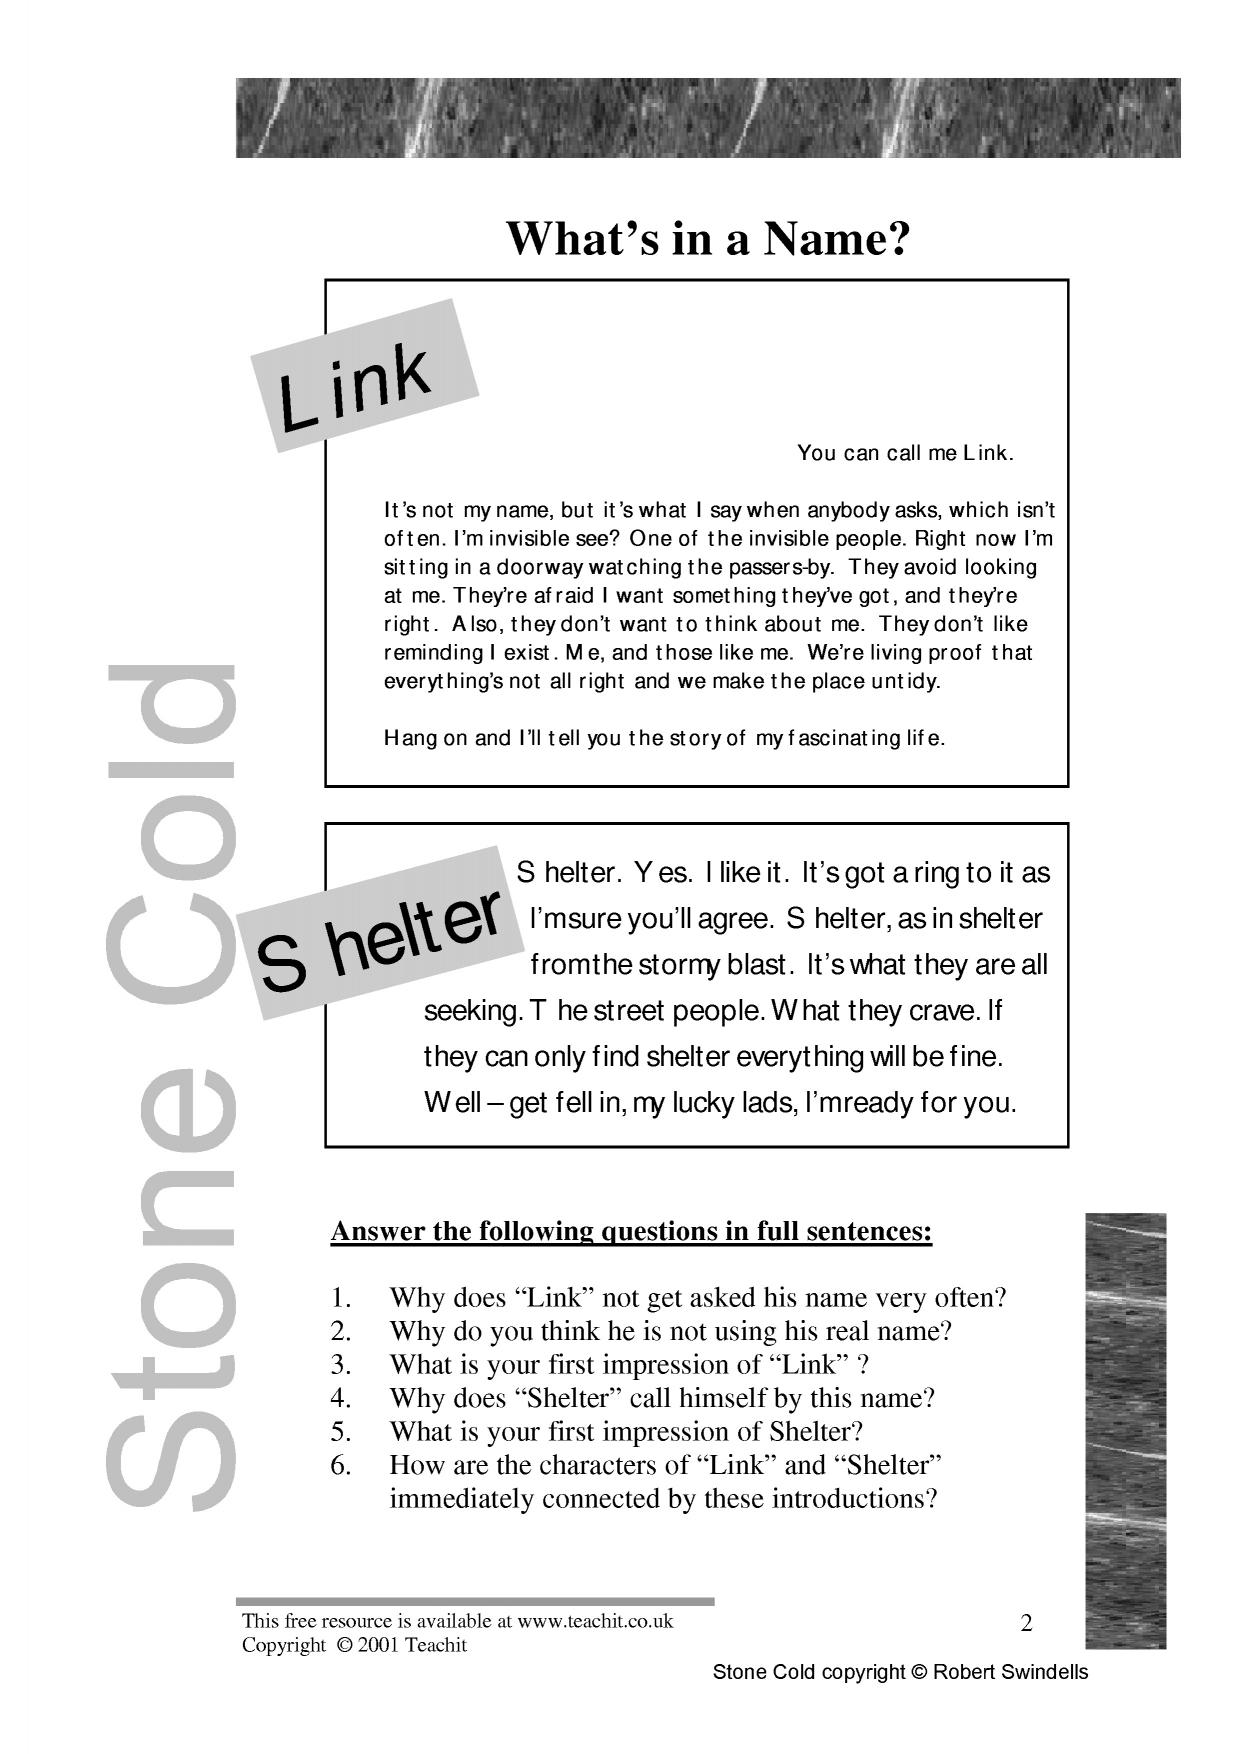 KS3 Stone Cold by Robert Swindells – Seeking Safety Worksheets